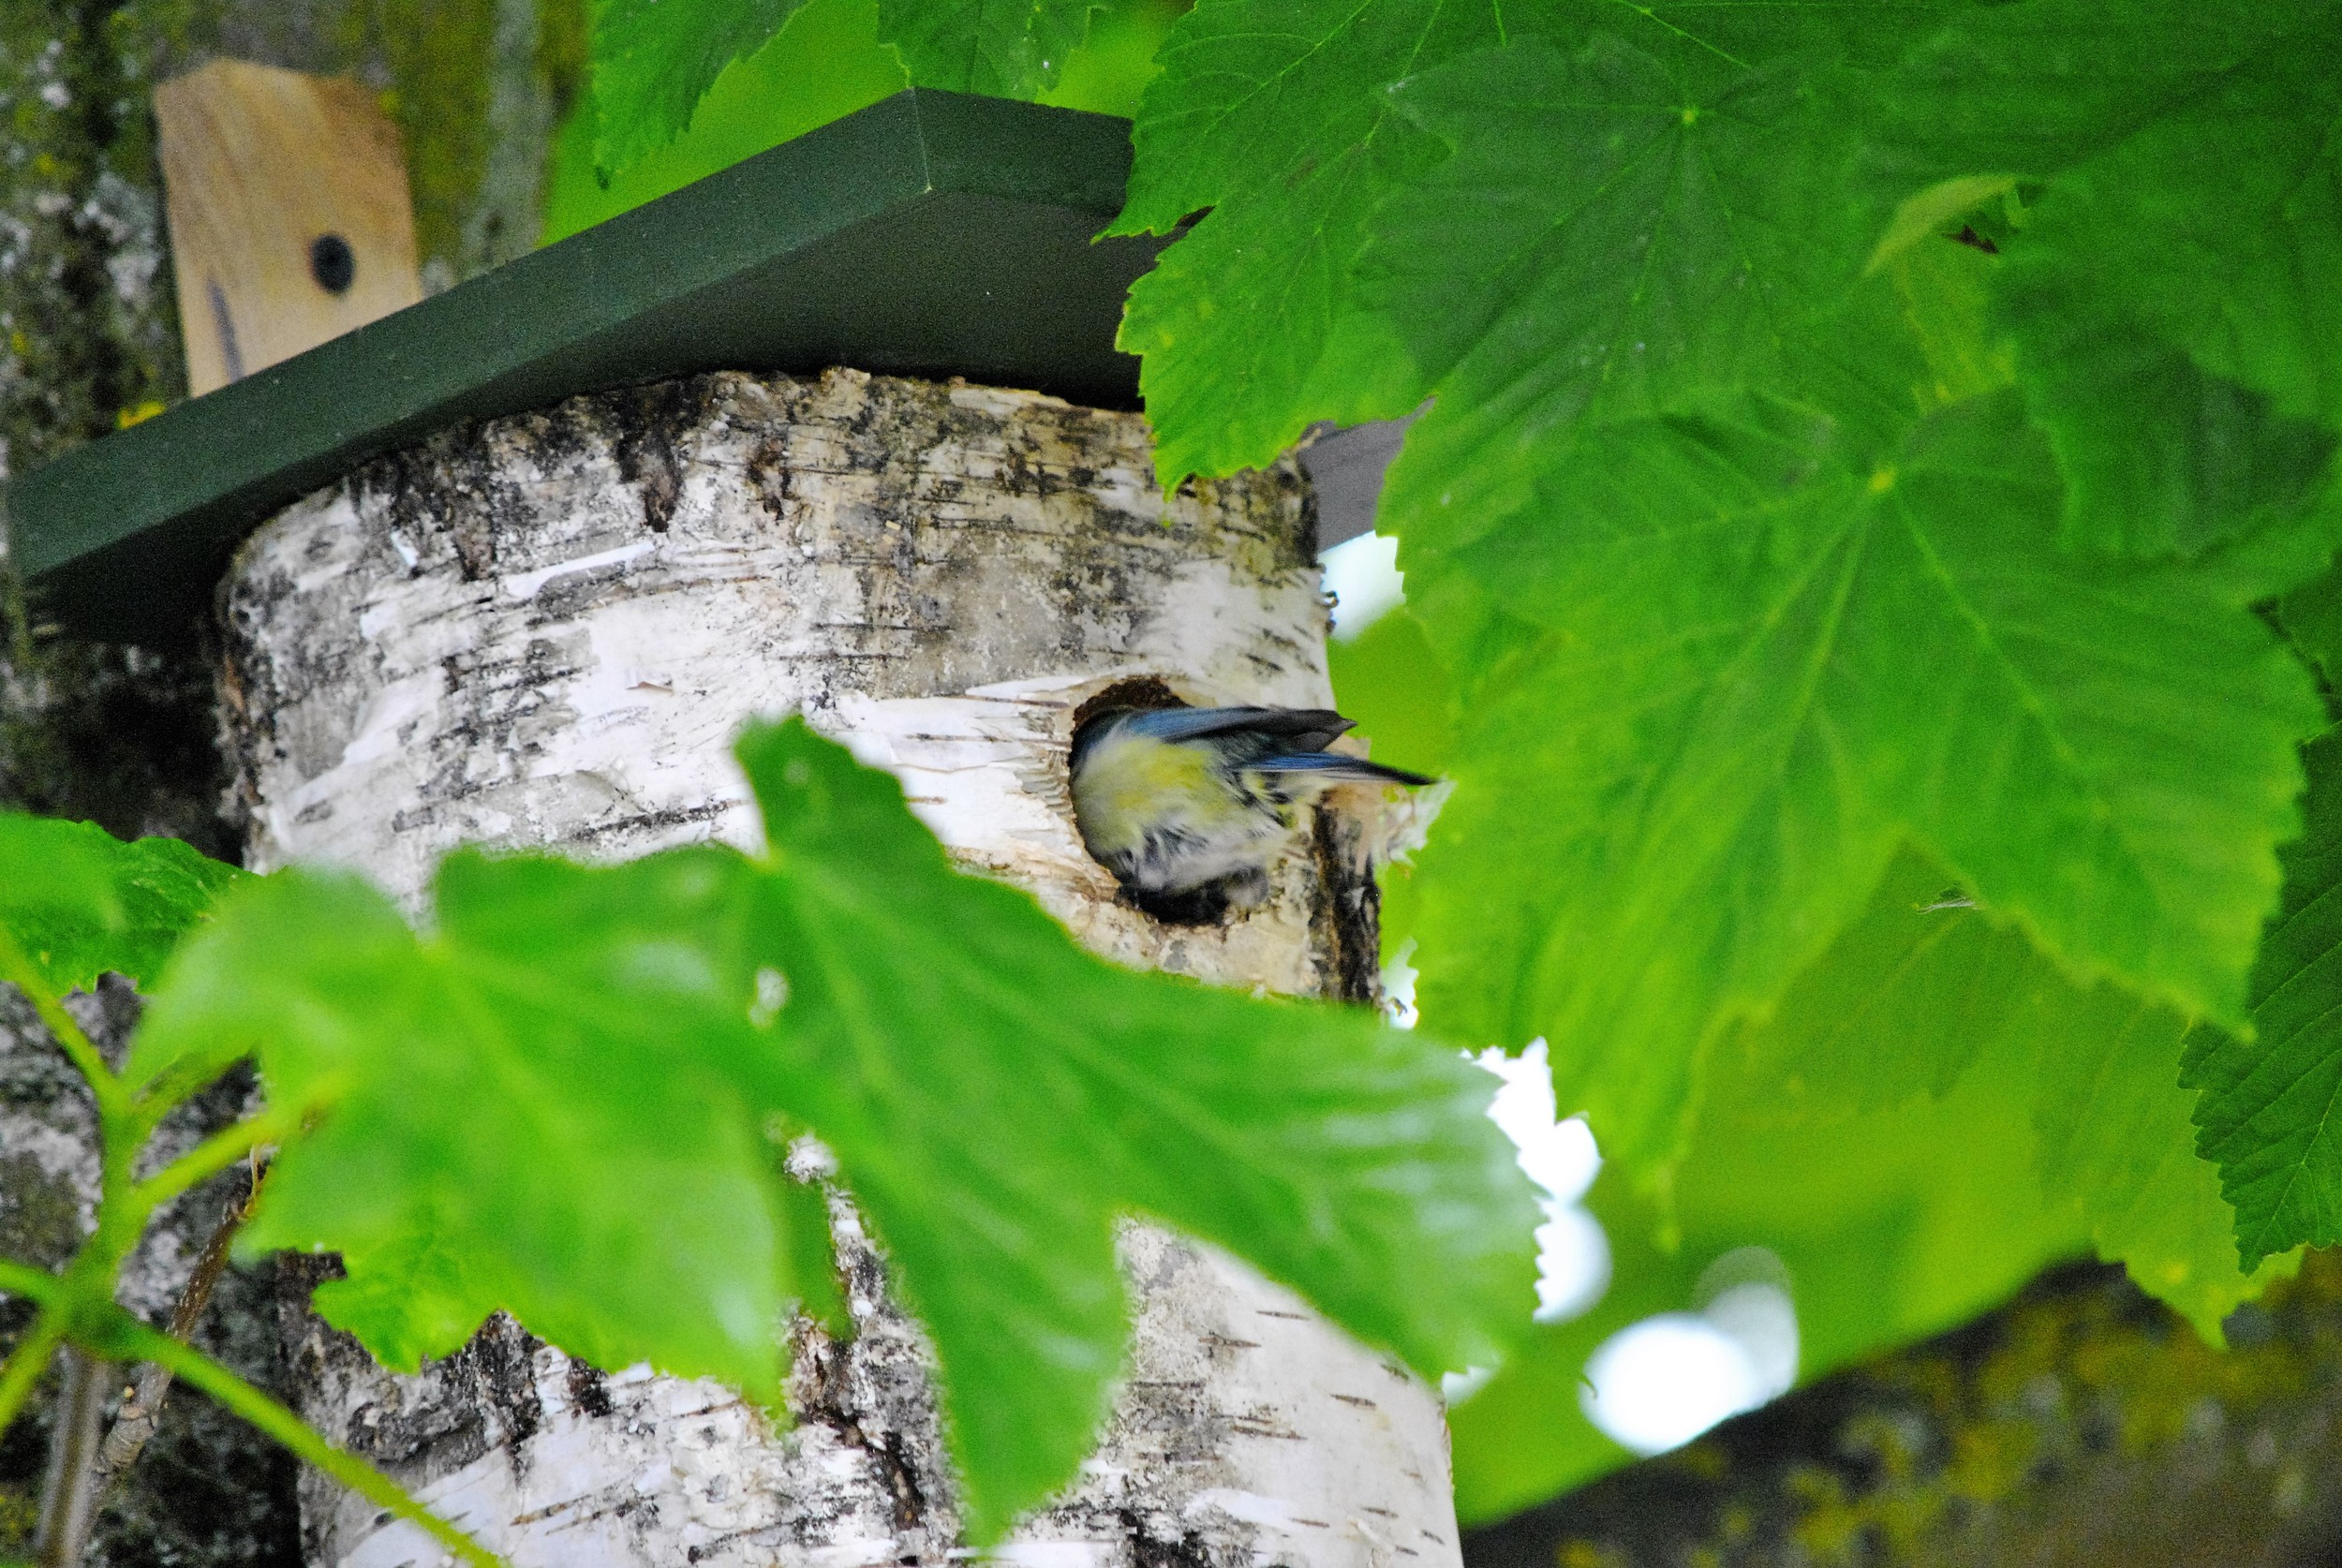 A Blue tit in the nest box outside the Ginger&Browns pet shop in Northwich, near Chester, Winsford and Frodsham in Cheshire.